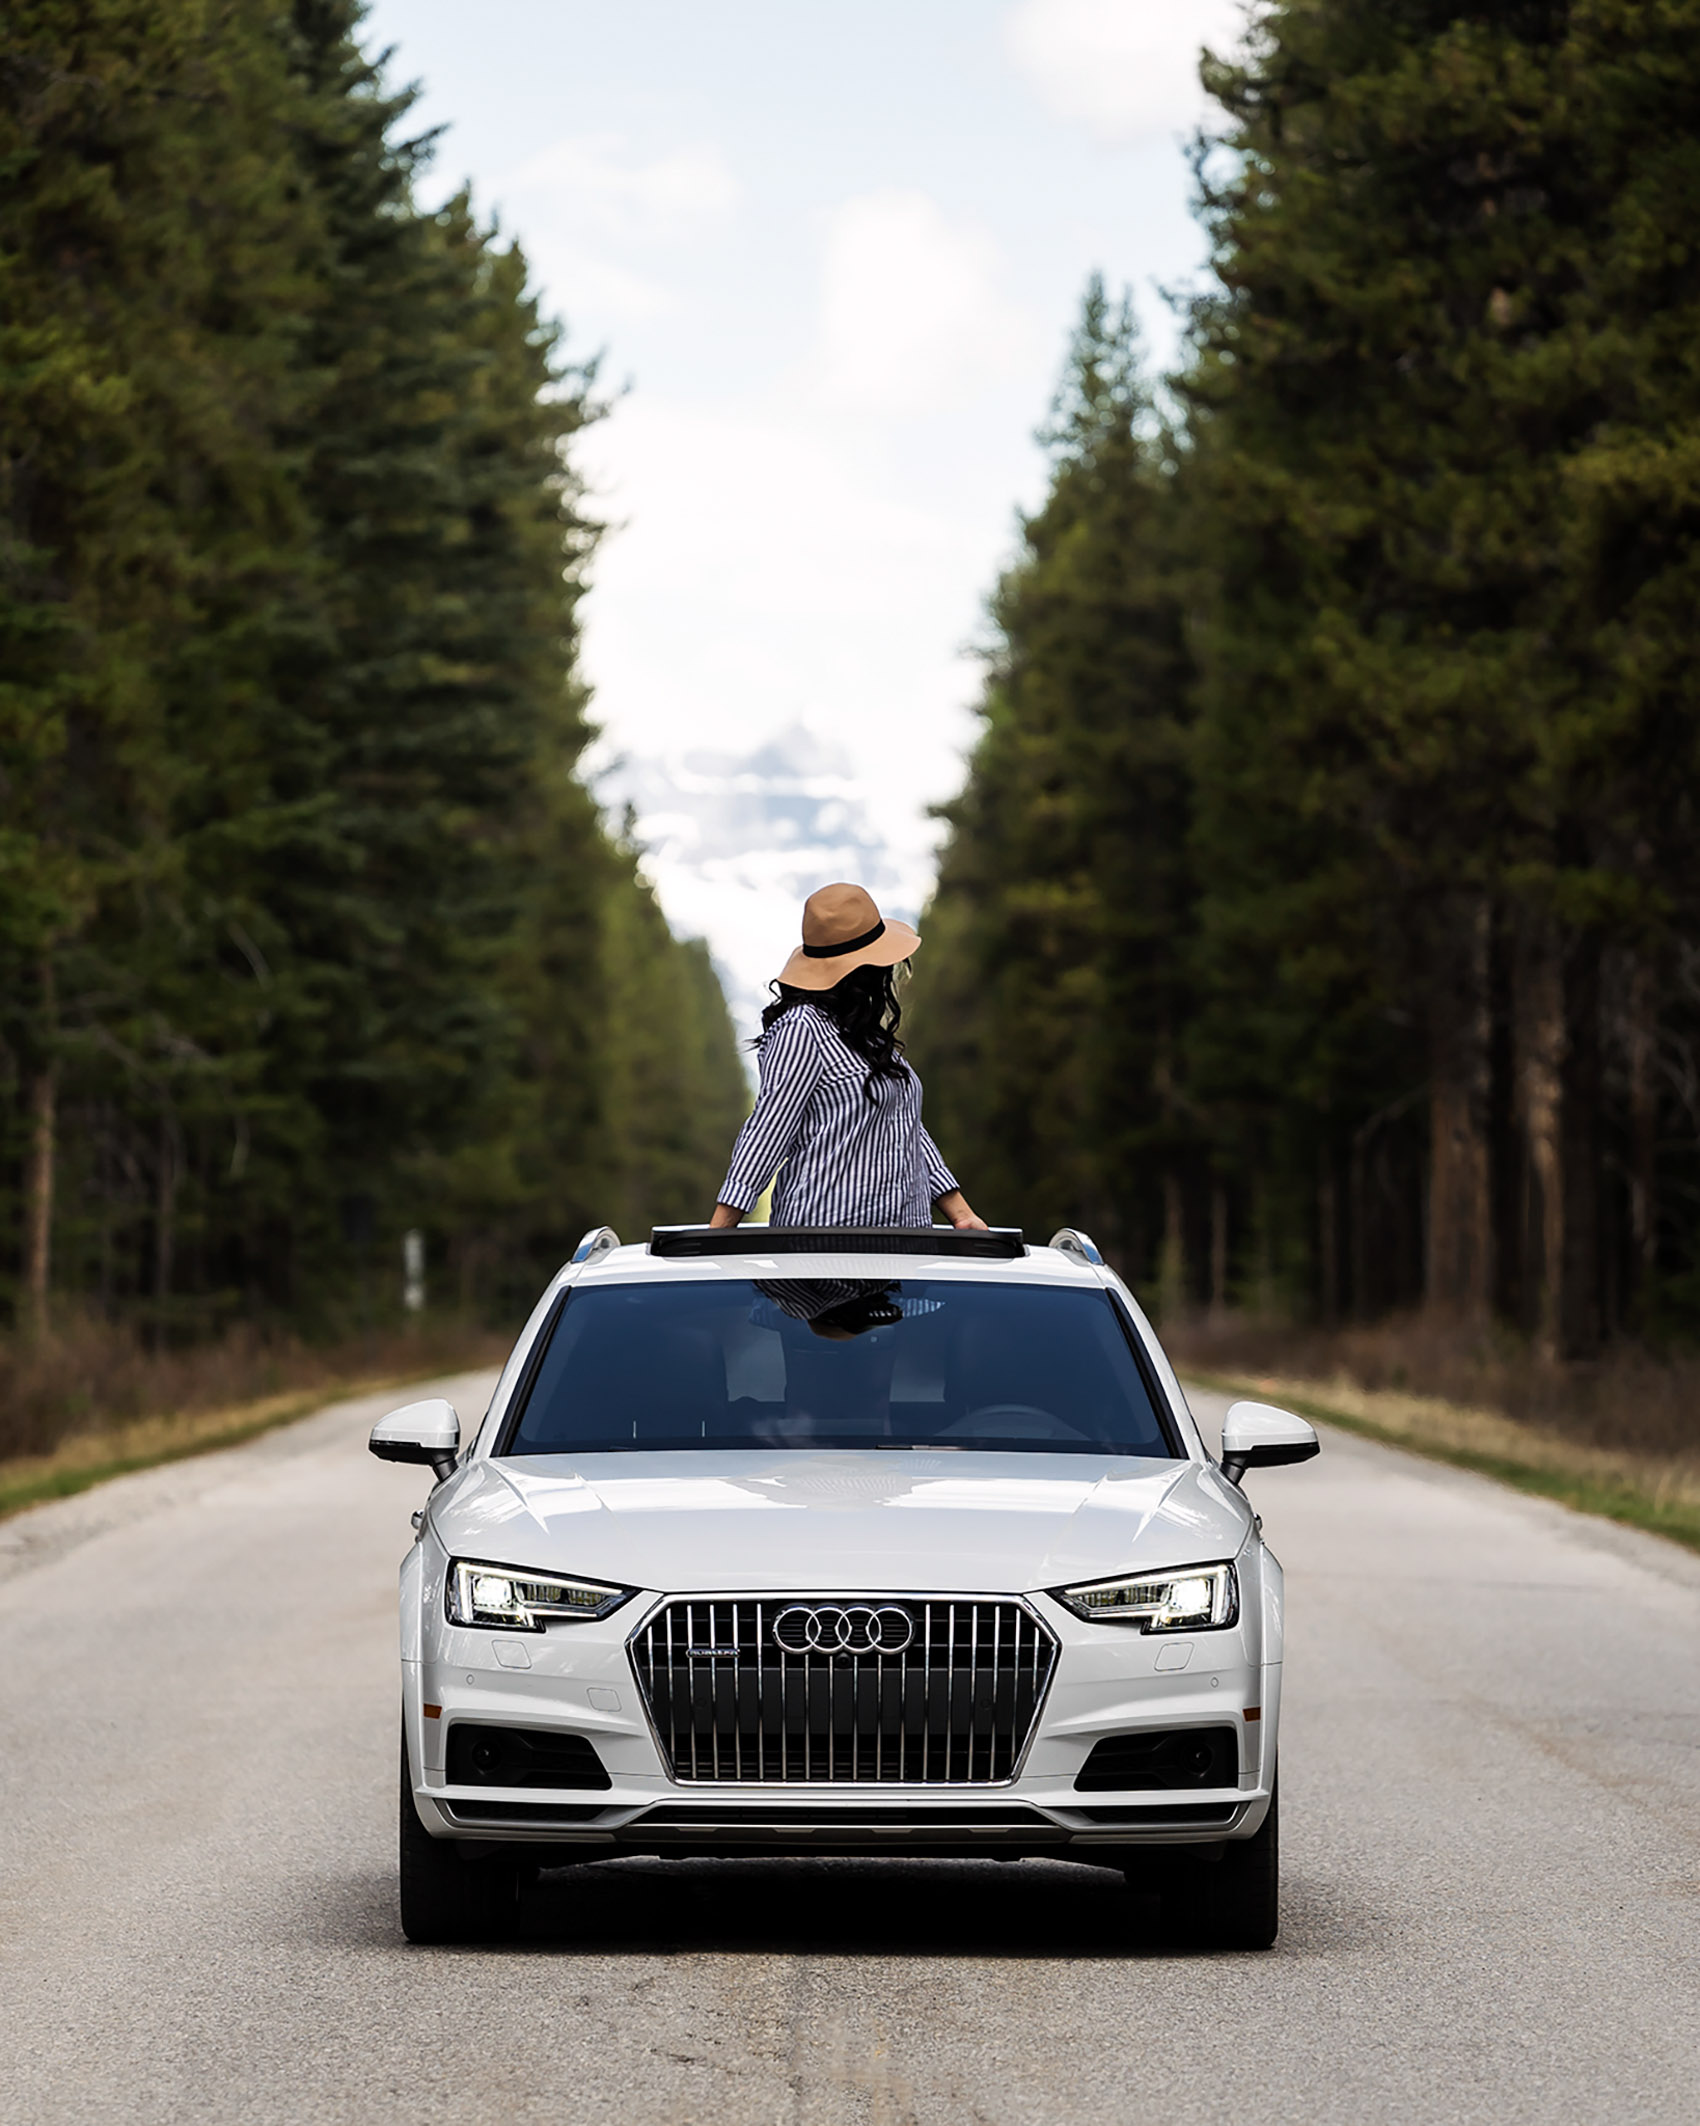 Audi All Road Audi Canada Karl Lee Photography Alberta Banff National Park